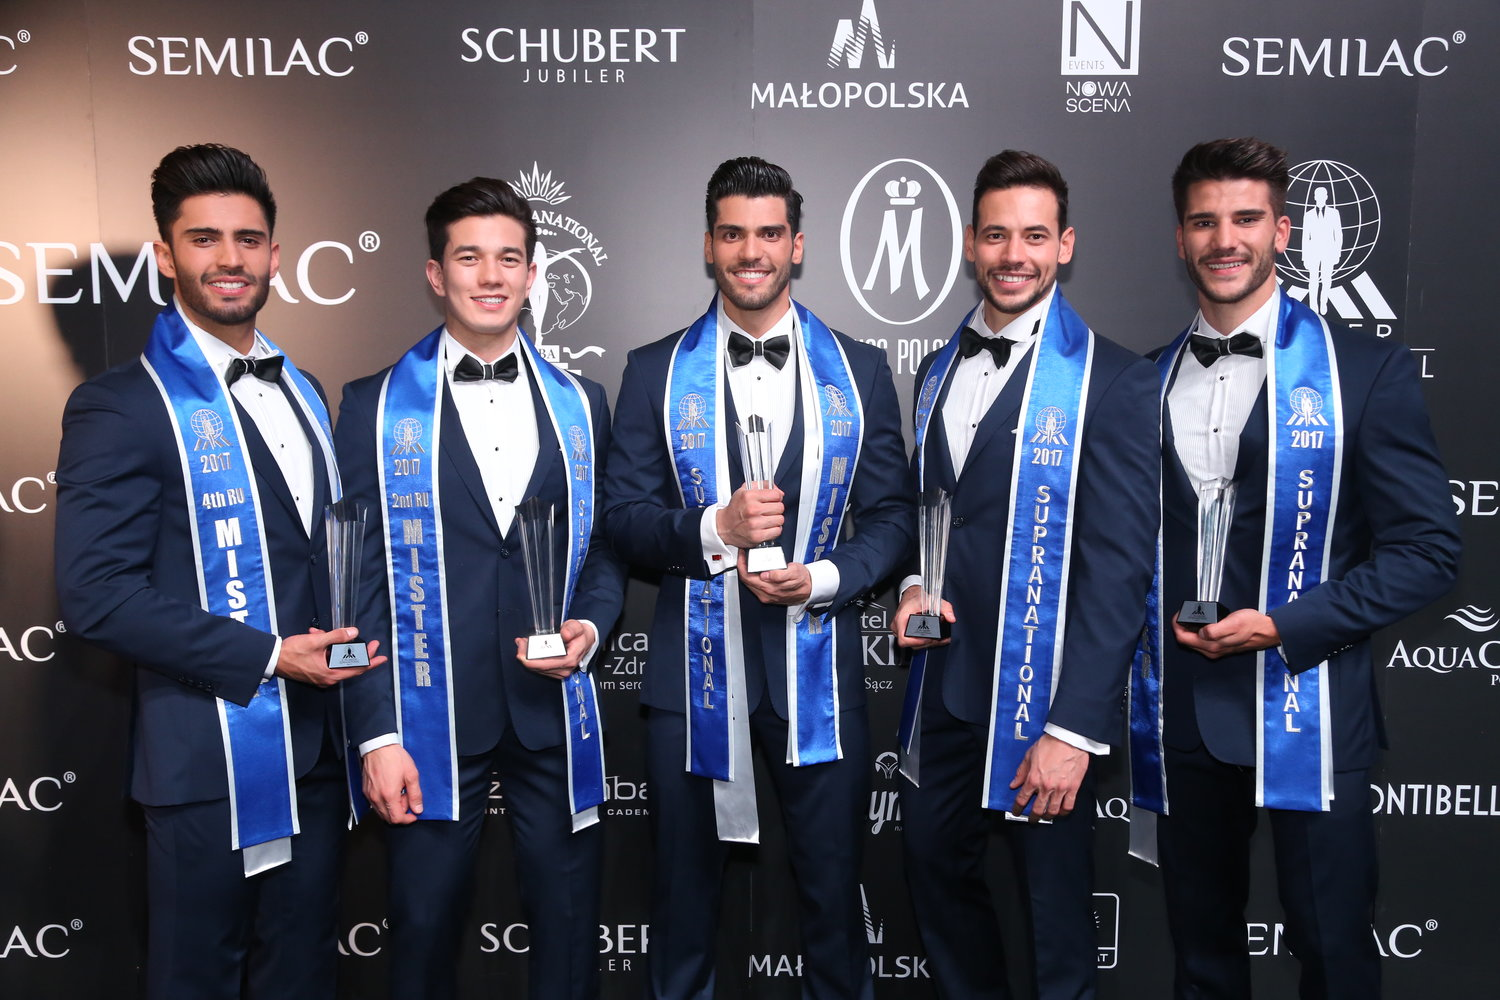 Mister Supranational 2017, Gabriel Correa (Center) with (fLtR) 4th runner-up Mexico, 2nd runner-up Brazil, 3rd runner-up Slovakia and 1st runner-up Spain.